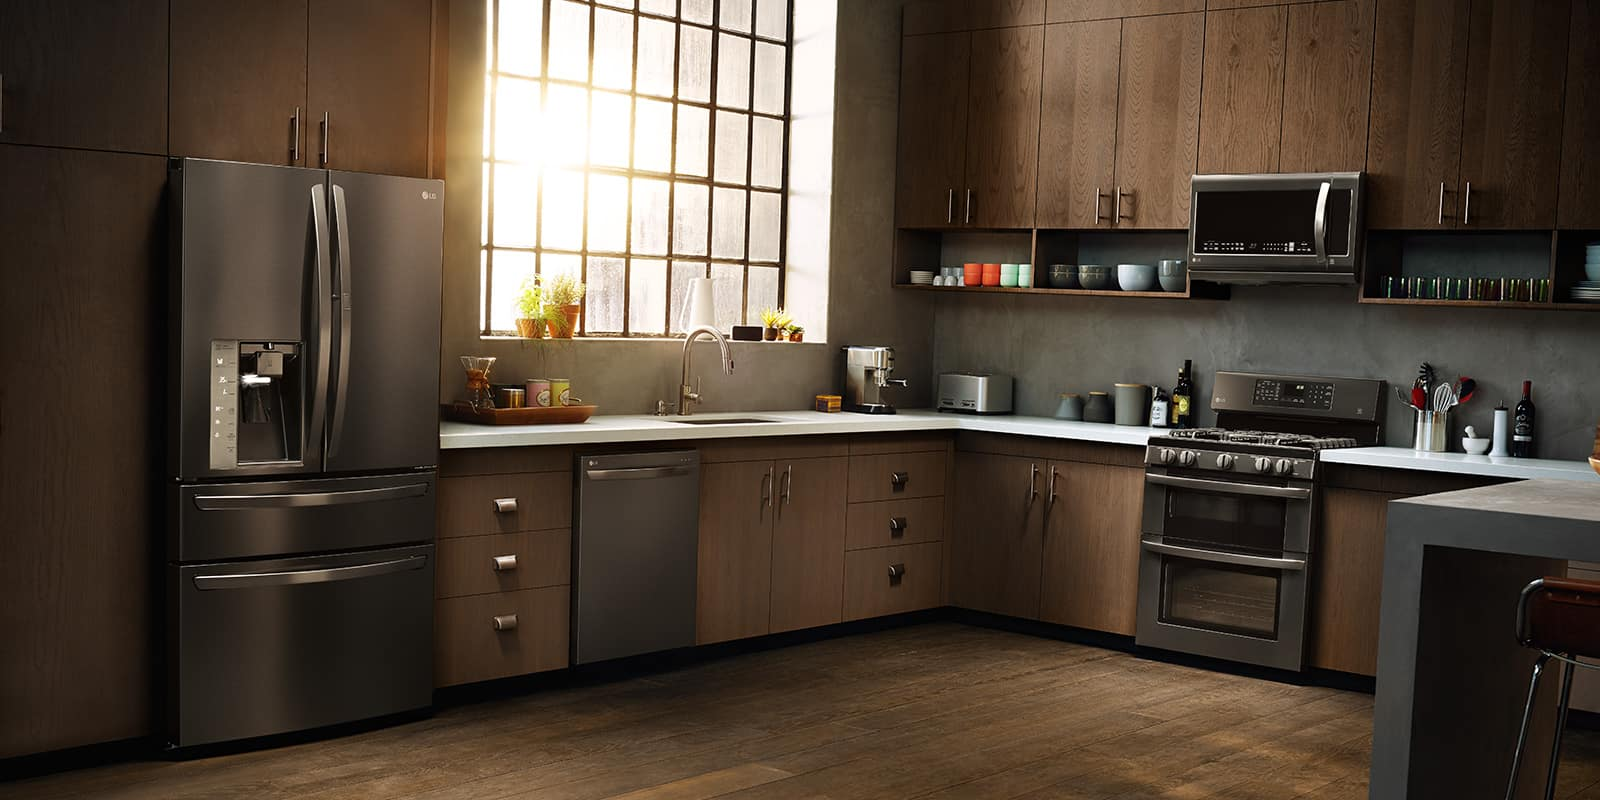 Modern Kitchen Appliances in Los Angeles - Realty Times